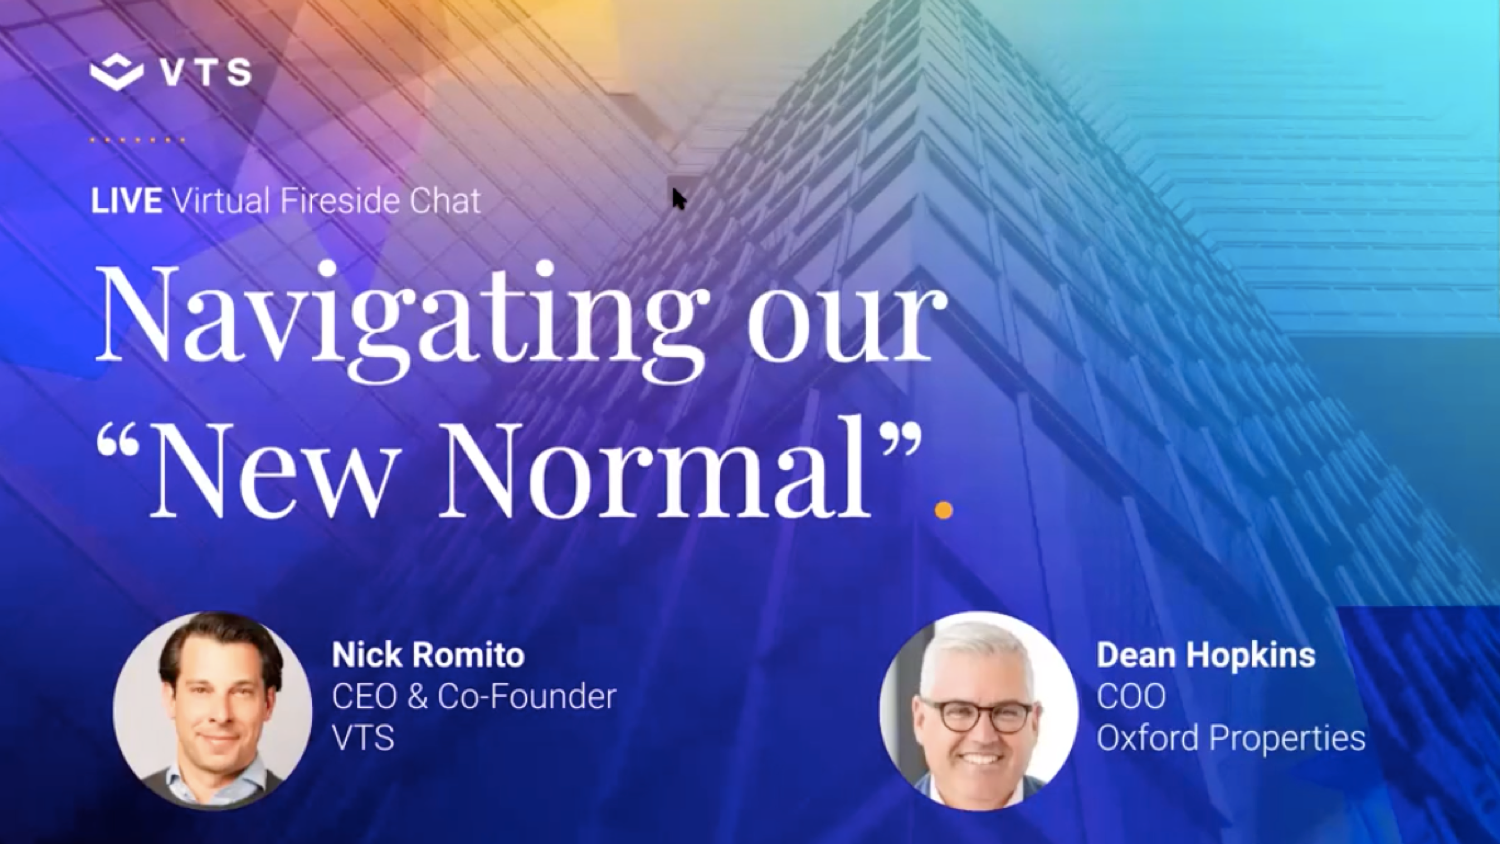 "A Virtual Fireside Chat with Oxford Properties' COO Dean Hopkins and VTS CEO Nick Romito on Navigating our New ""Normal."""